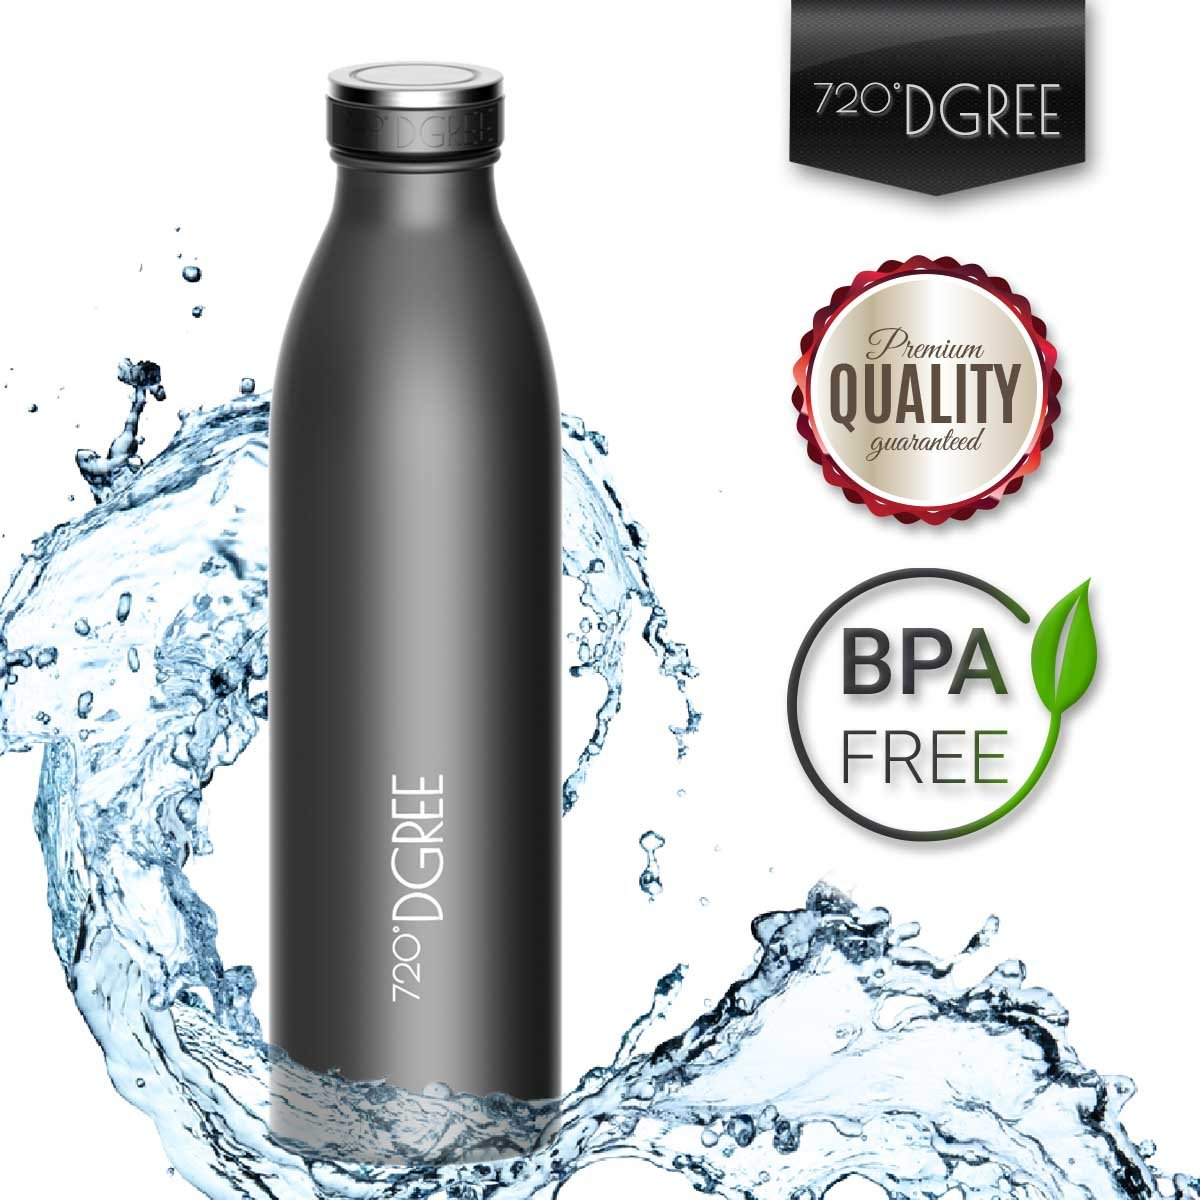 "720°DGREE Water Bottle ""milkyBottle"" 500ml, 750ml, 1litre 